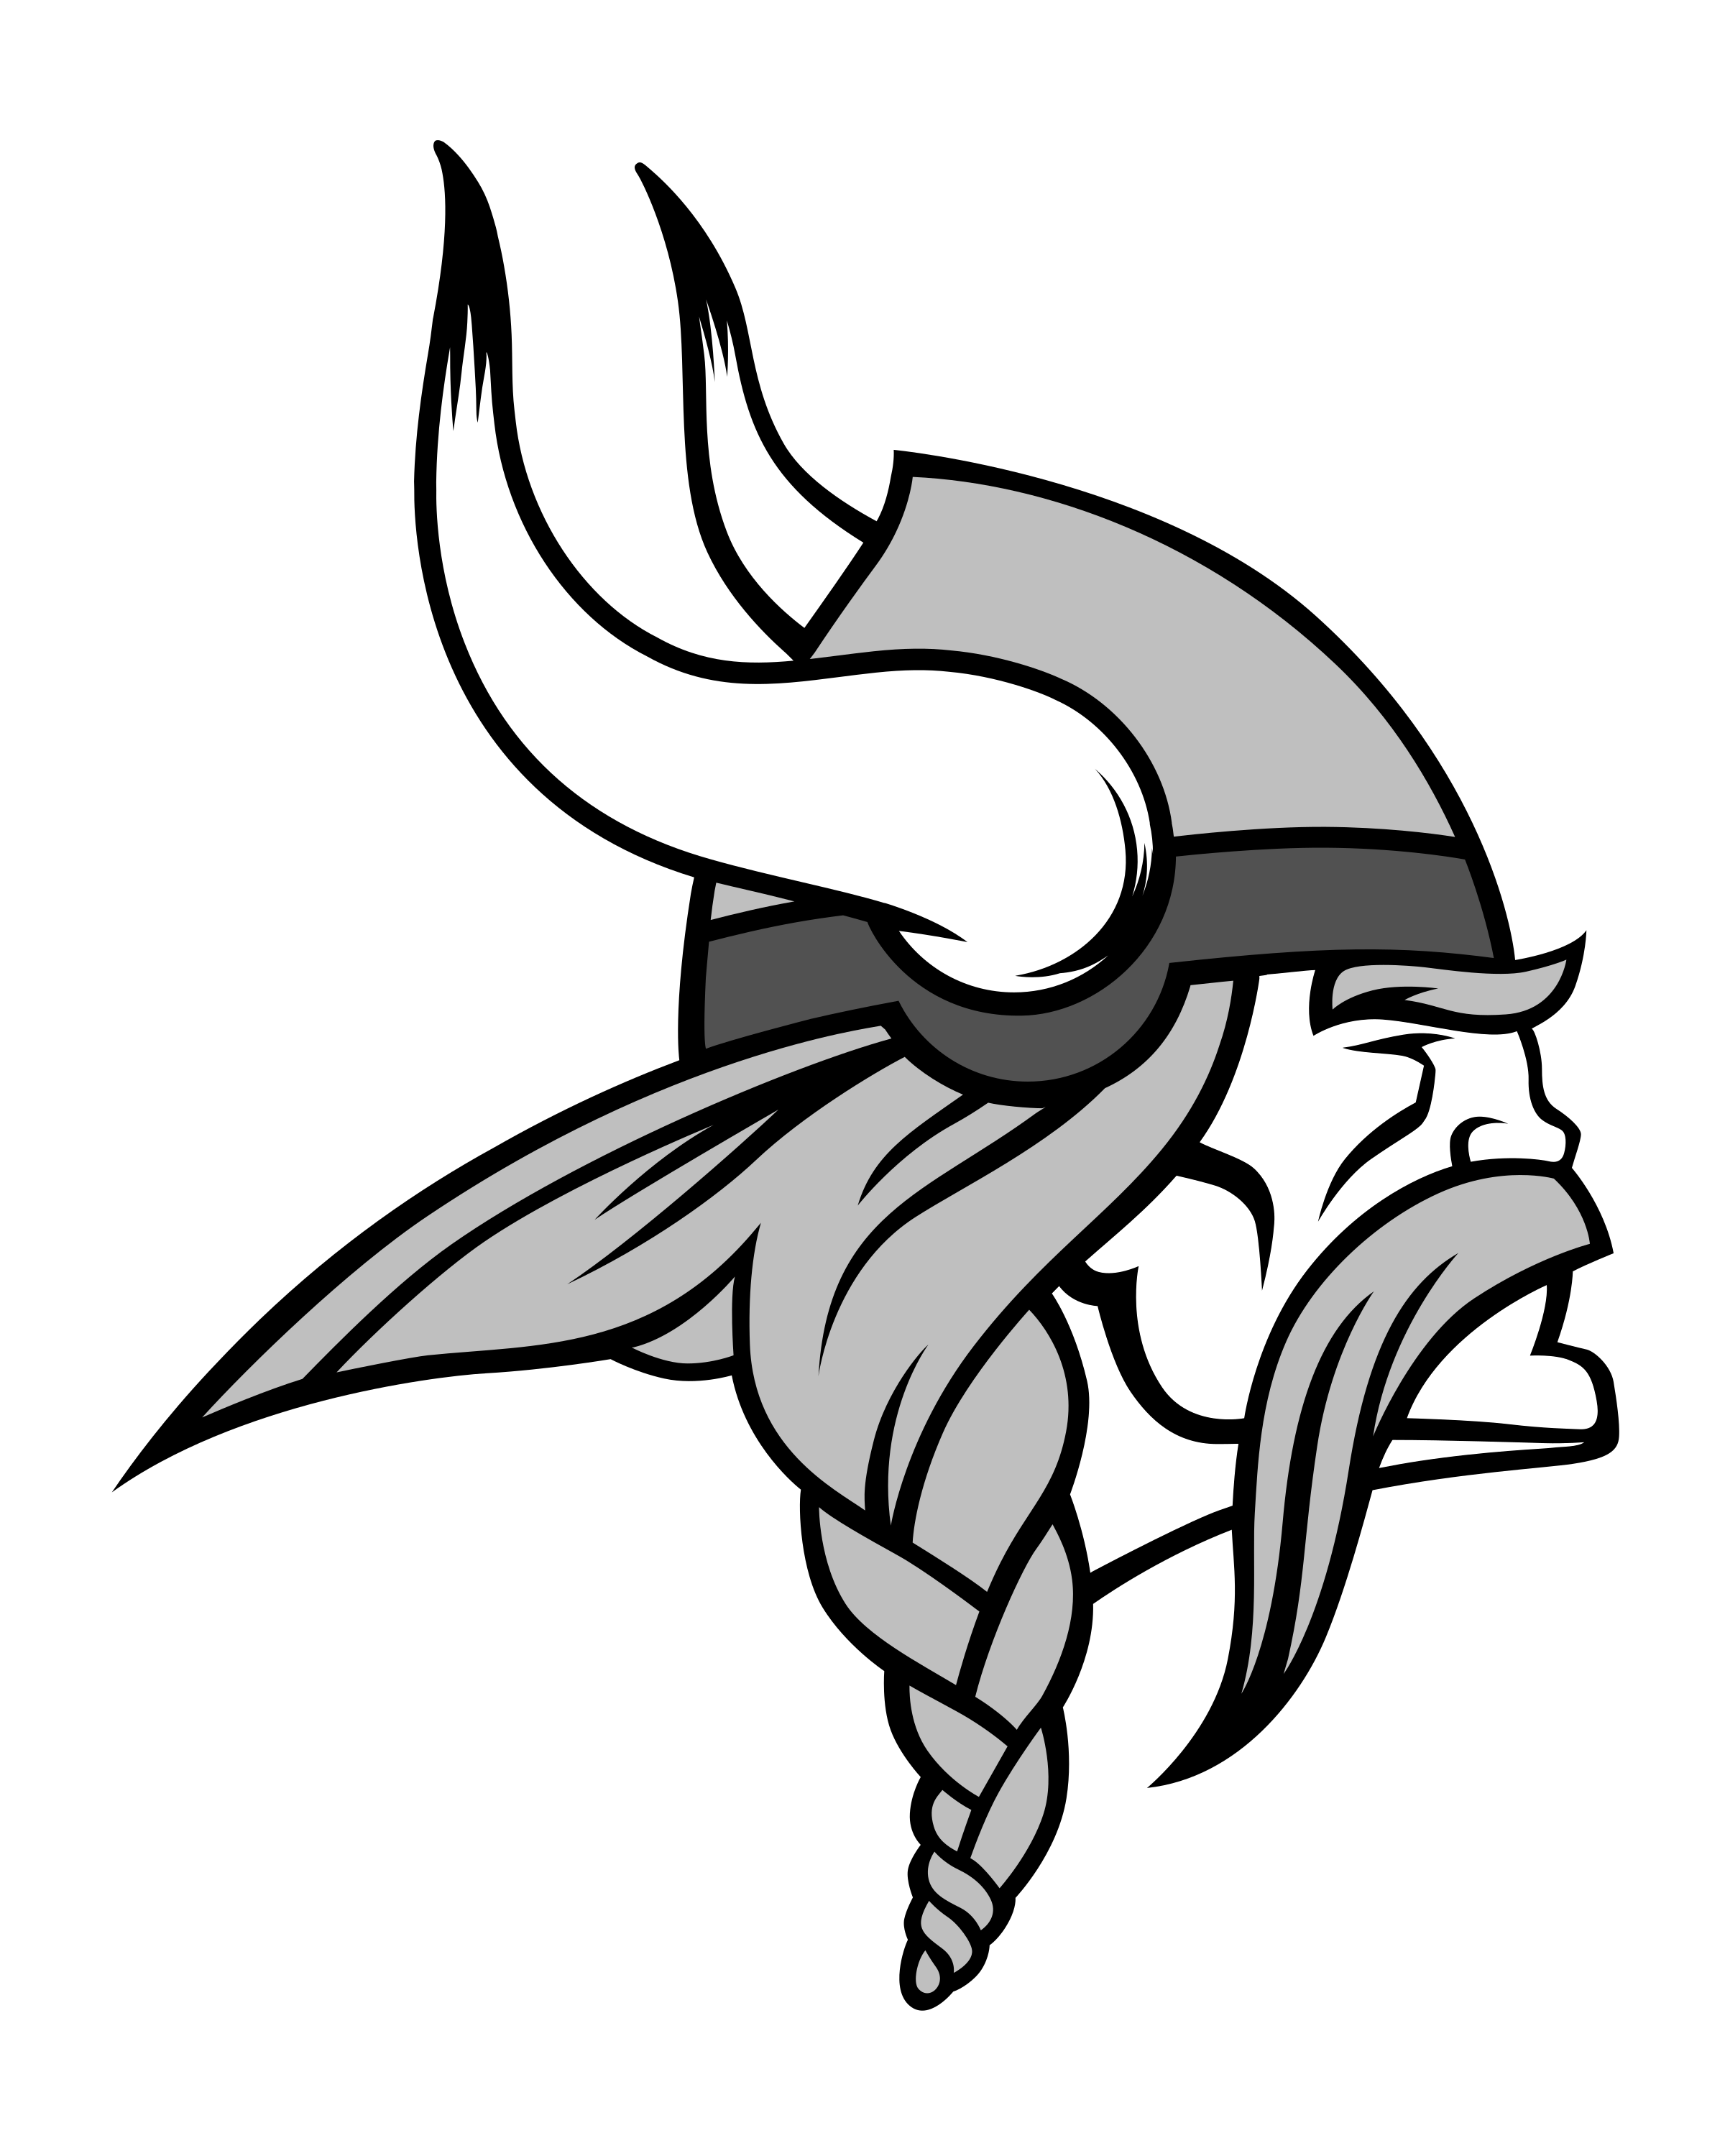 Nfl vikings logo png. Drawing at getdrawings com